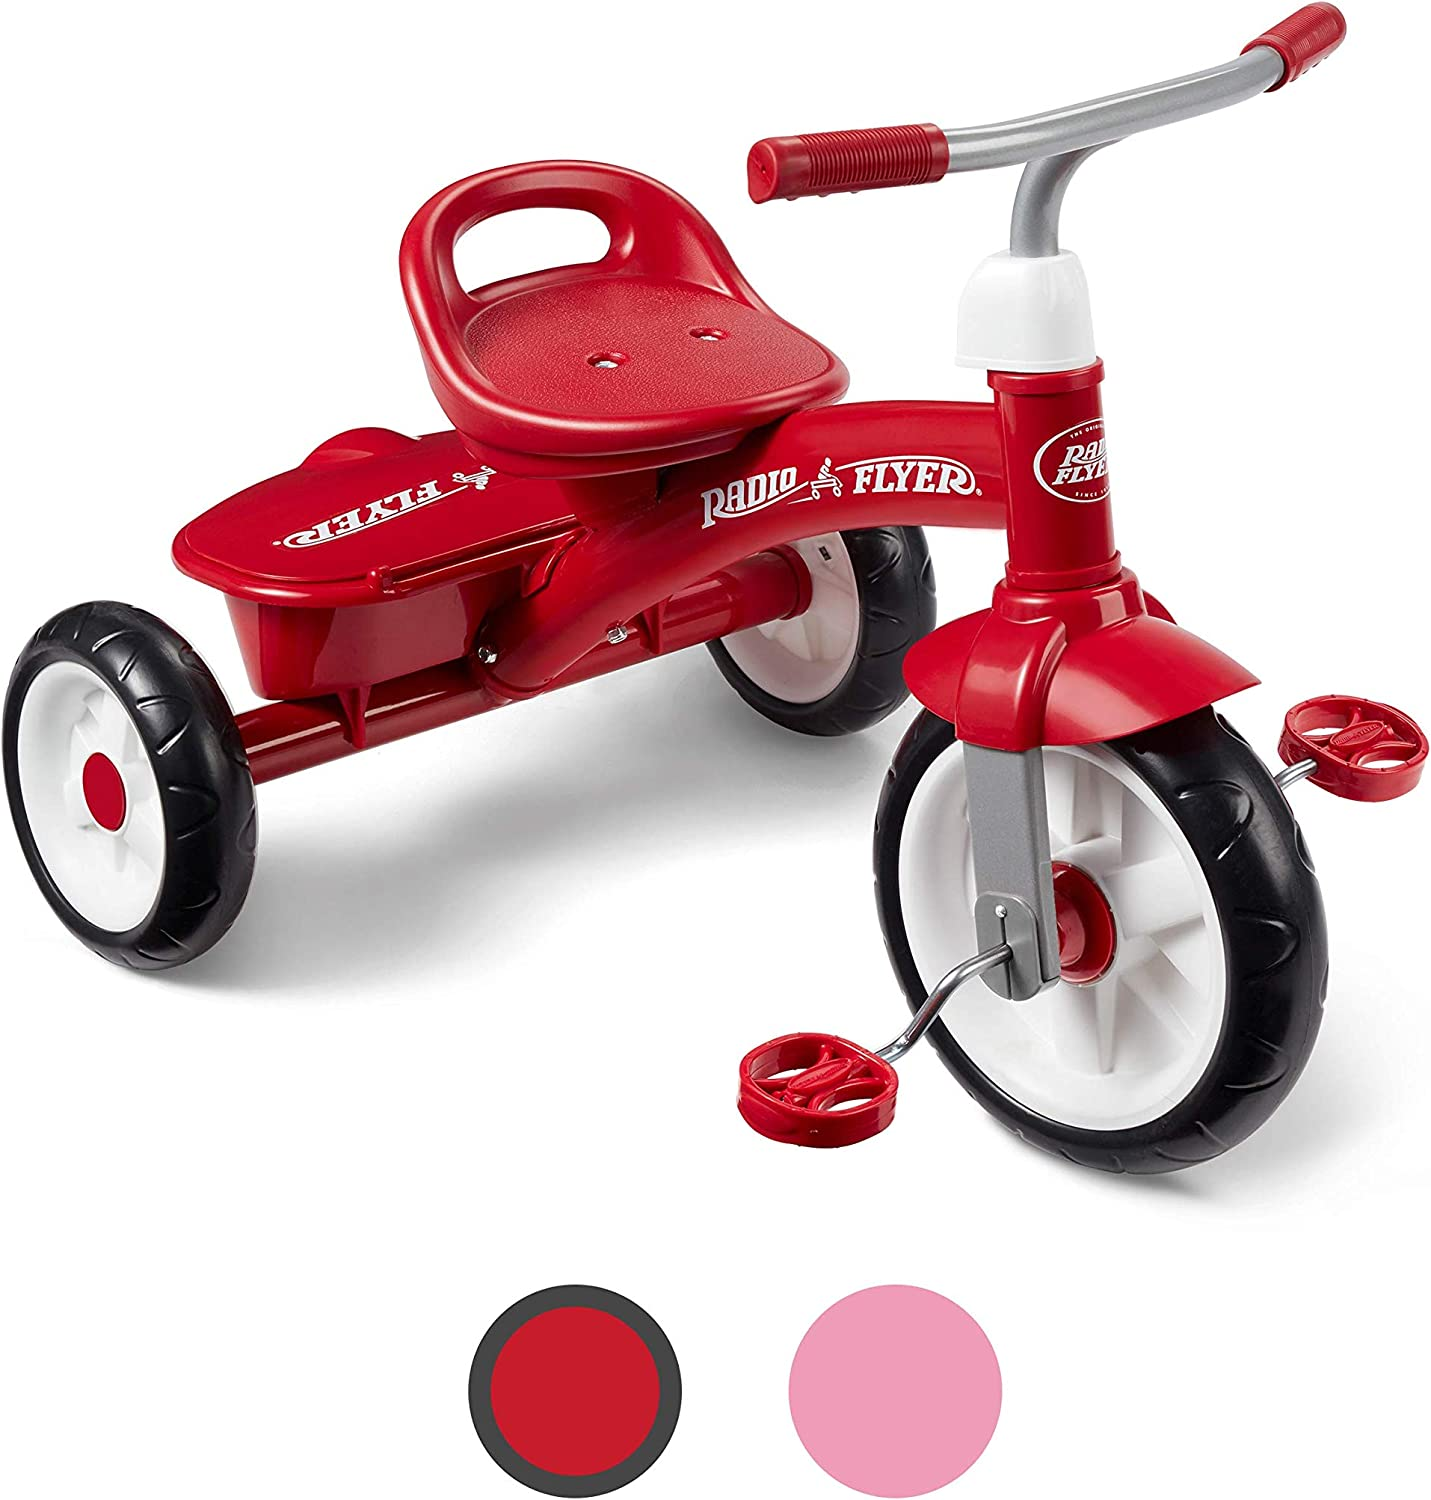 Radio Flyer Red Rider Trike (Amazon Exclusive), Tricycles - Amazon Canada